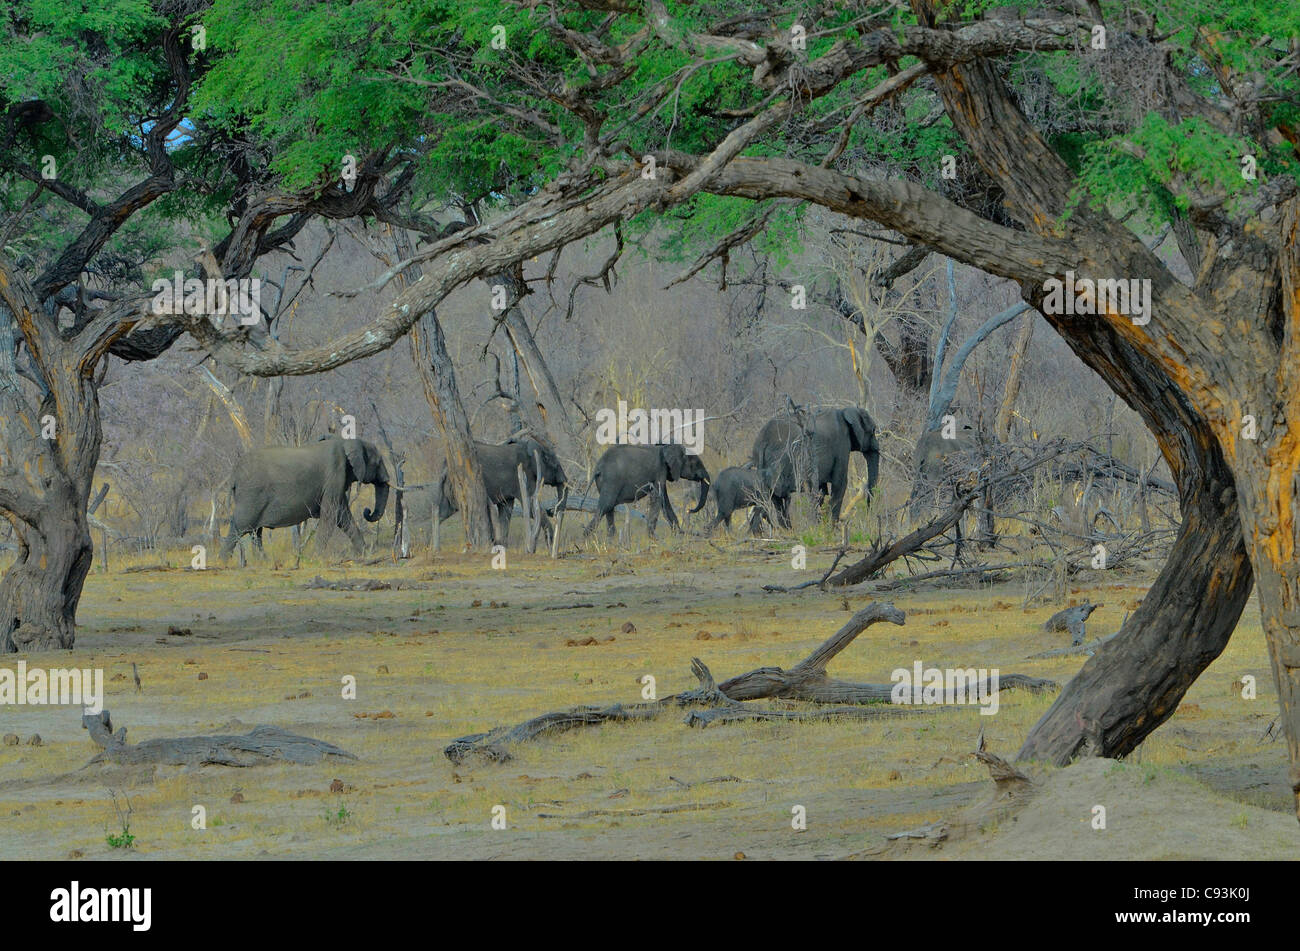 Zimbabwe is a small country boasting an incredible variety of landscapes and animals. Stock Photo